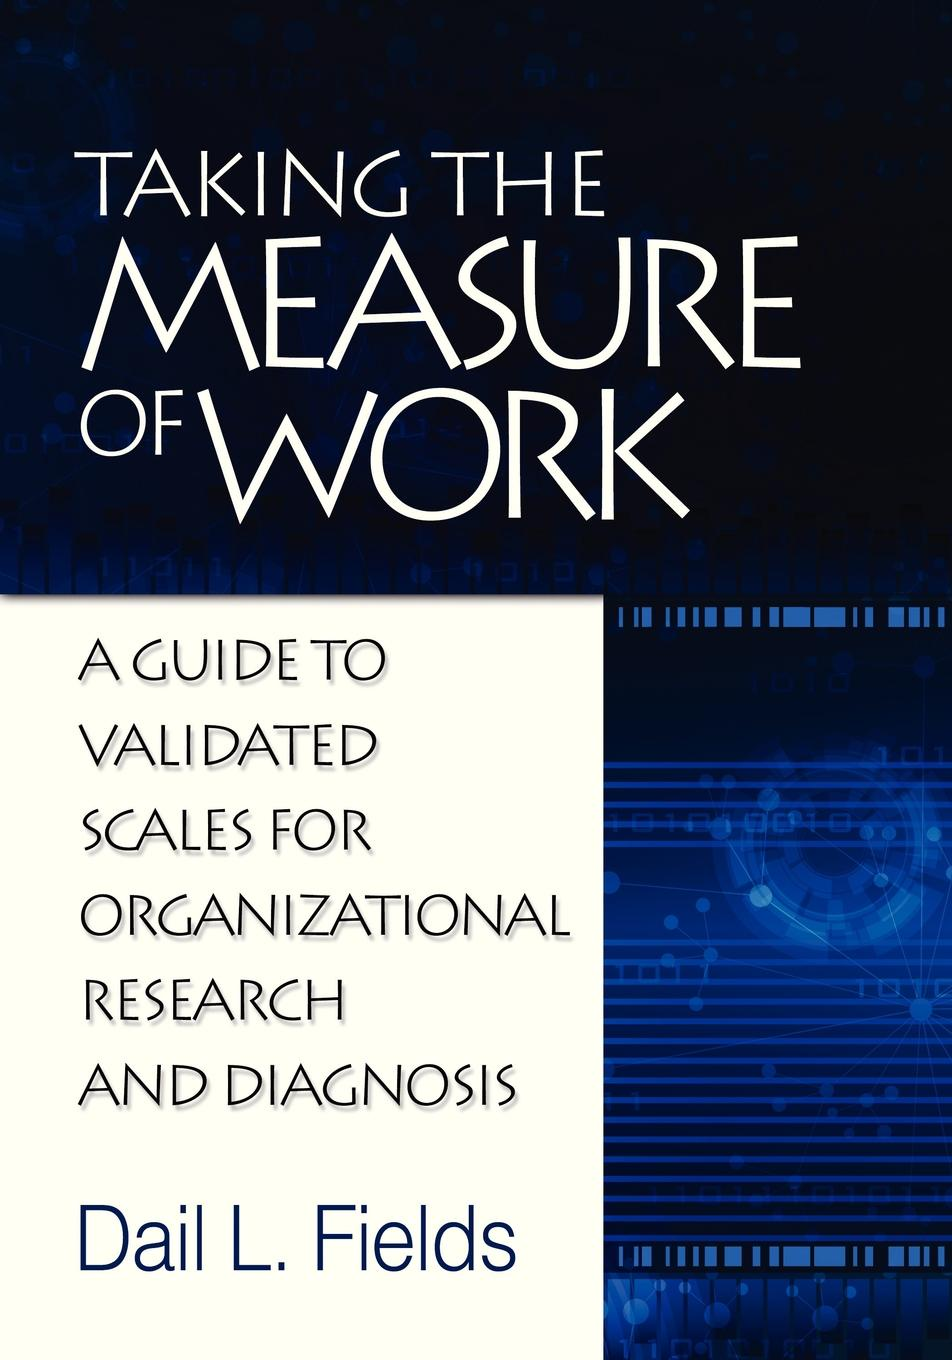 где купить Dail L. Fields Taking the Measure of Work. A Guide to Validated Scales for Organizational Research and Diagnosis по лучшей цене